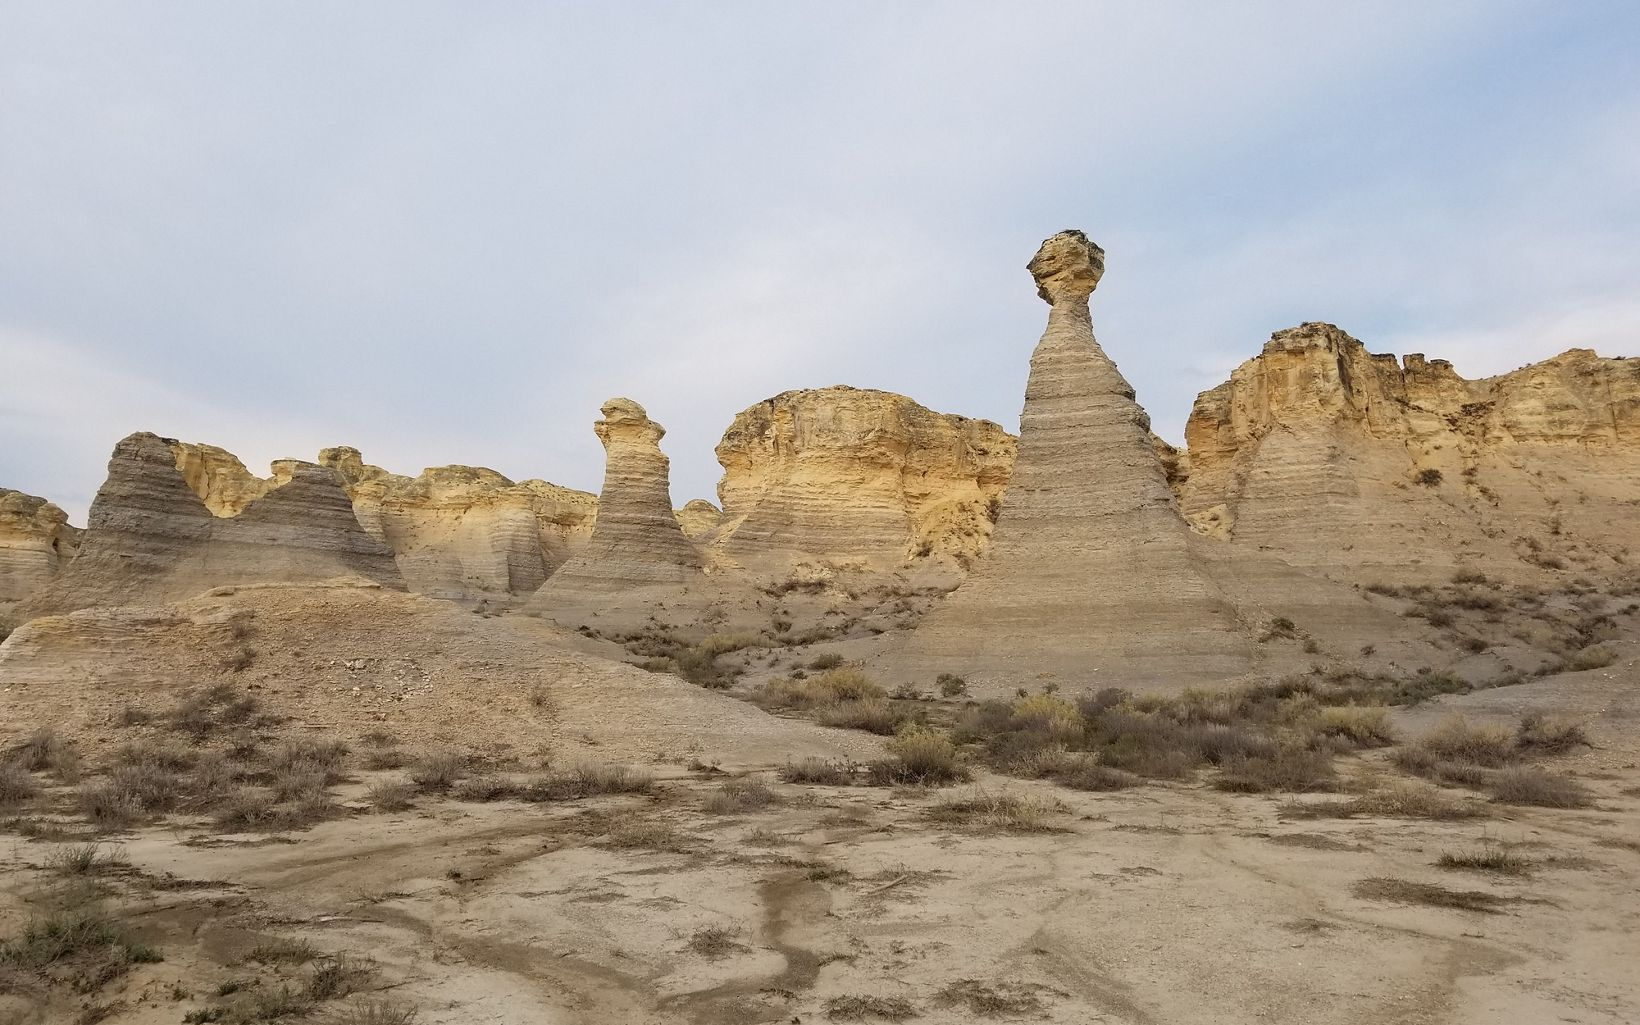 A ground-level view of rock formations at Little Jerusalem Badlands State Park in Kansas.